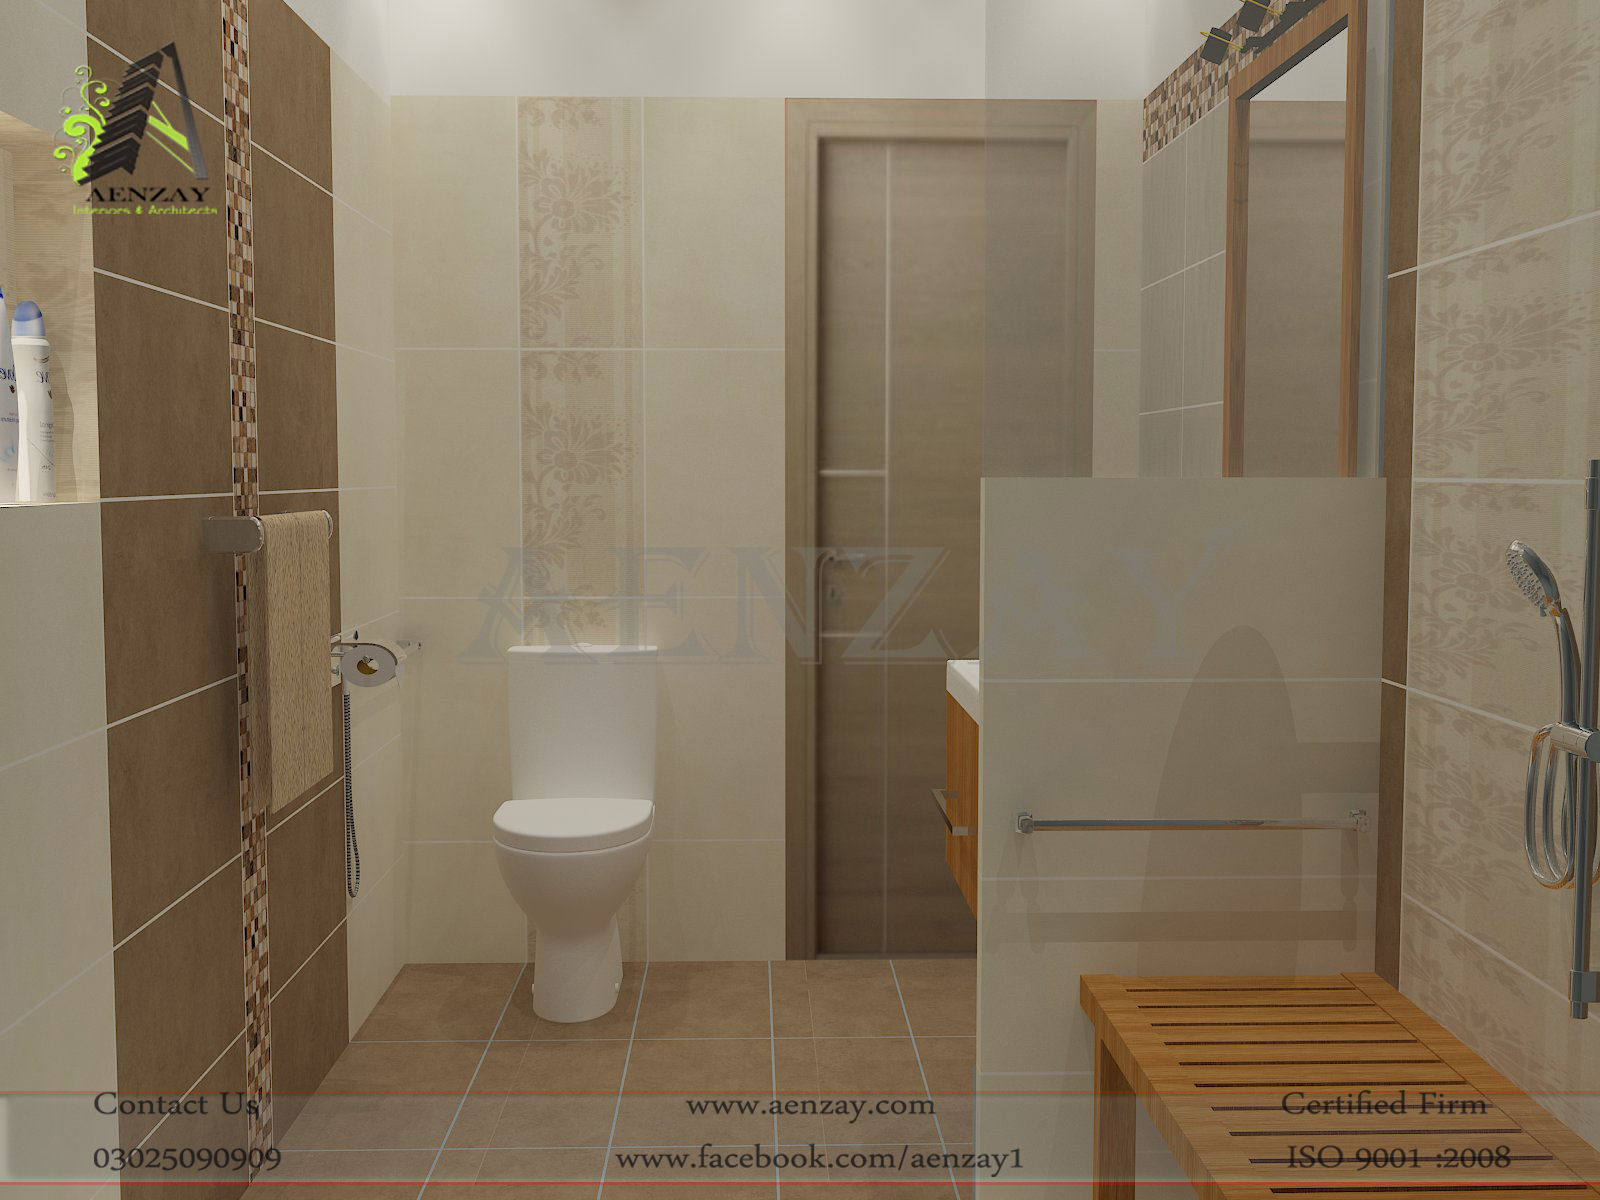 Bathro0m design by aenzay i a aenzay interiors for Interior designs bathrooms ideas